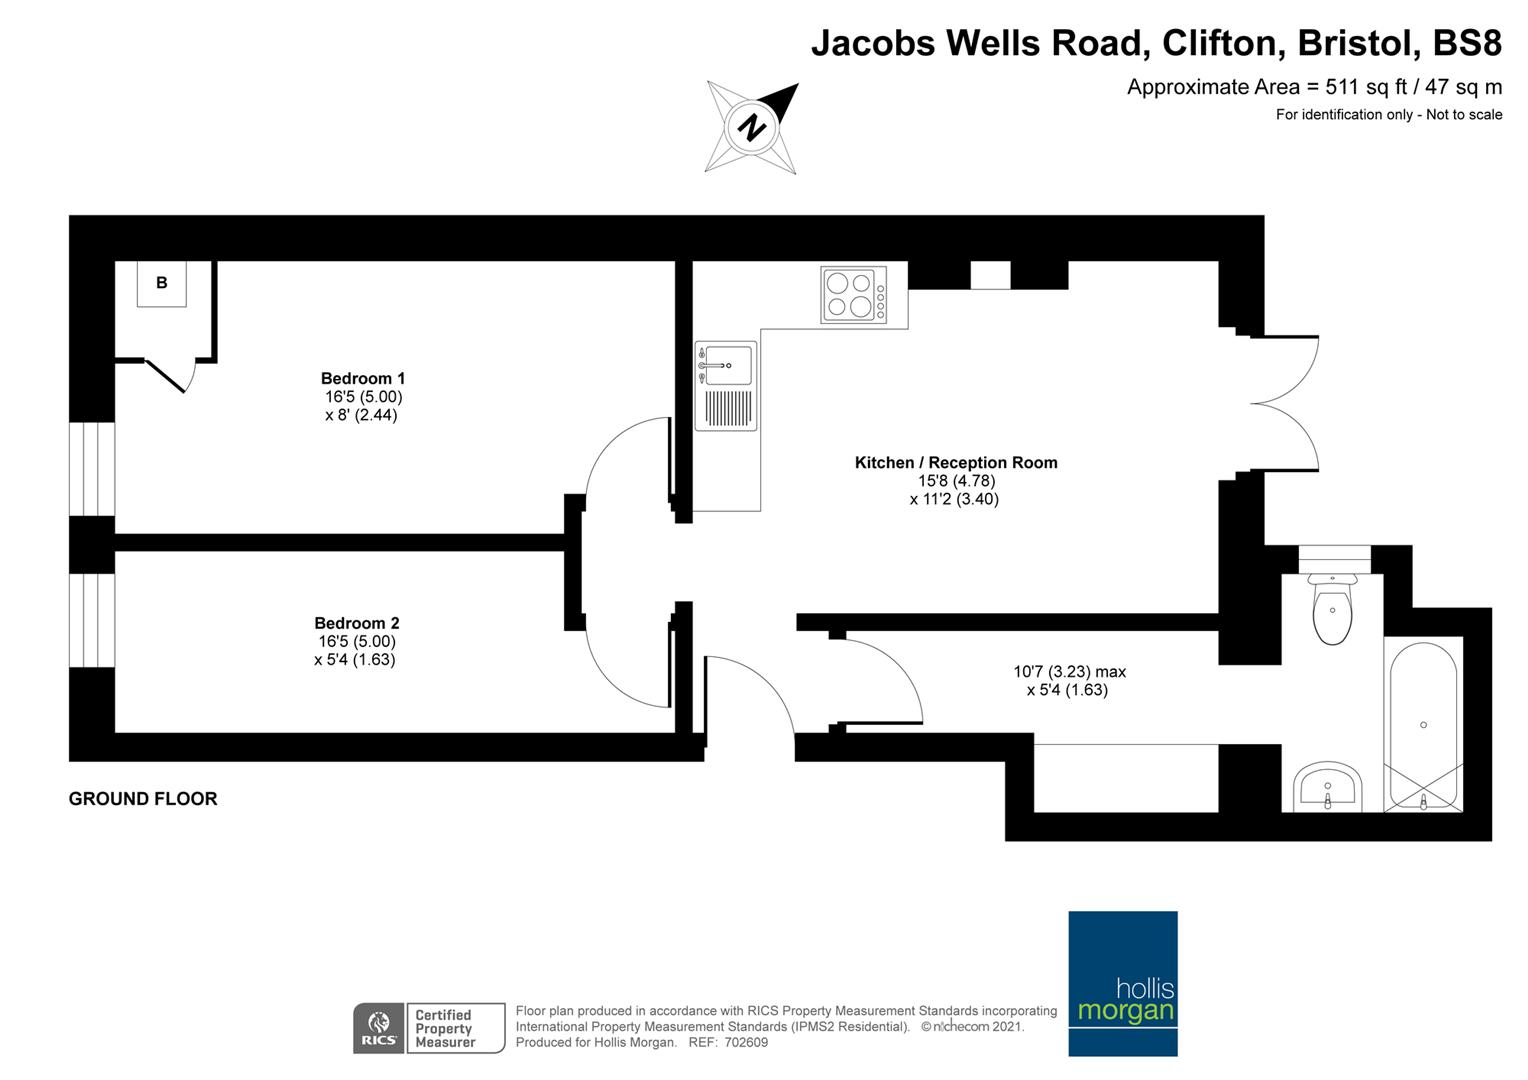 Floorplans For Jacobs Wells Road, Clifton